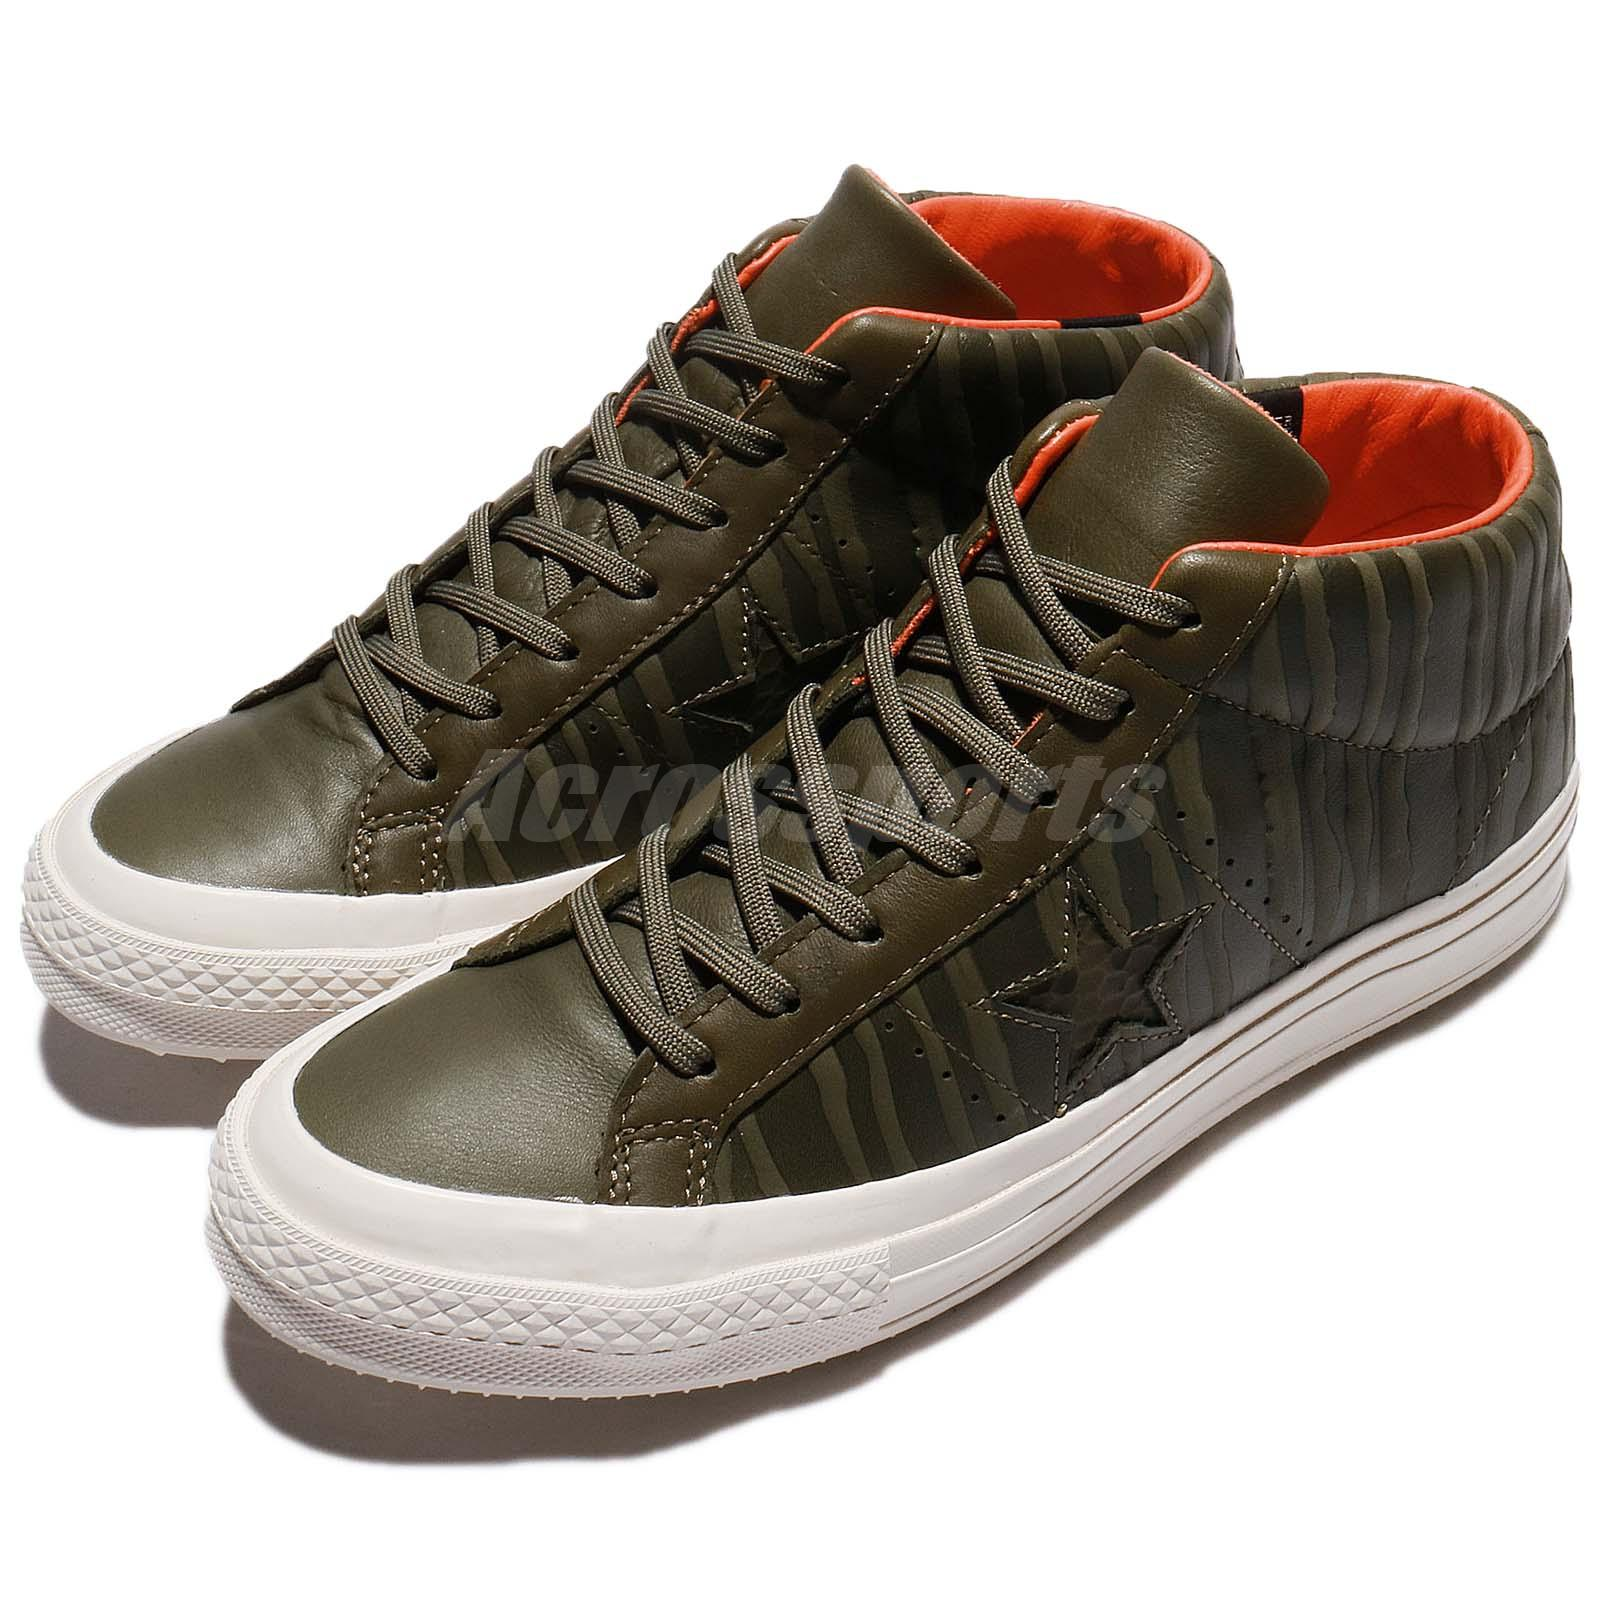 Men's Converse One Star Mid Counter Climate Shoes NWT